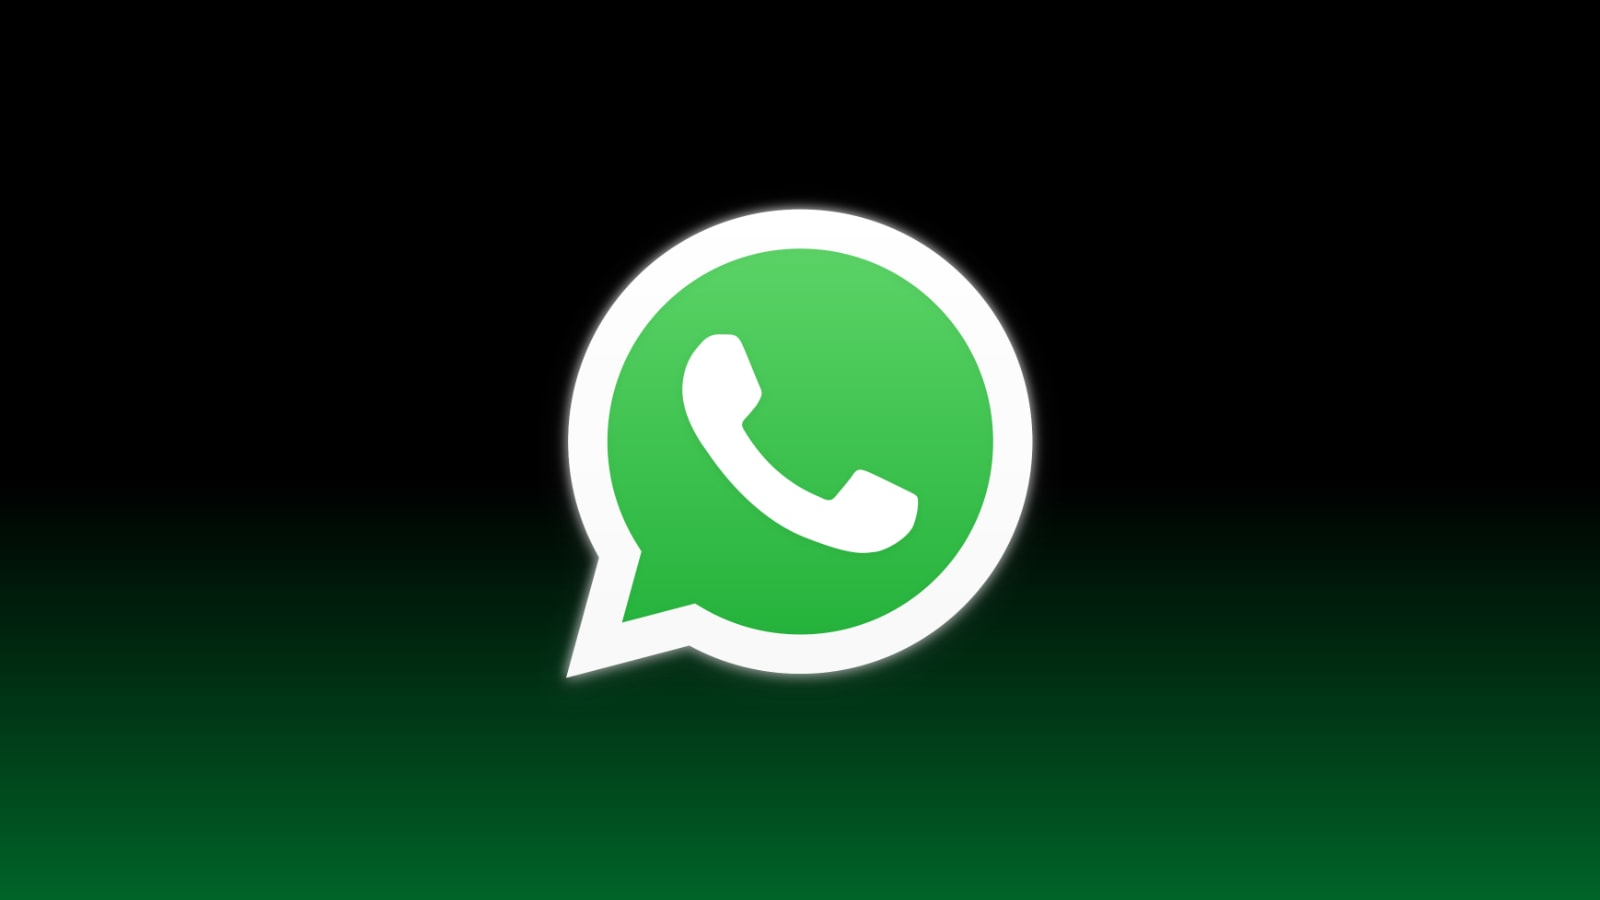 WhatsApp users made 1.4 billion voice and video calls New Year's Eve